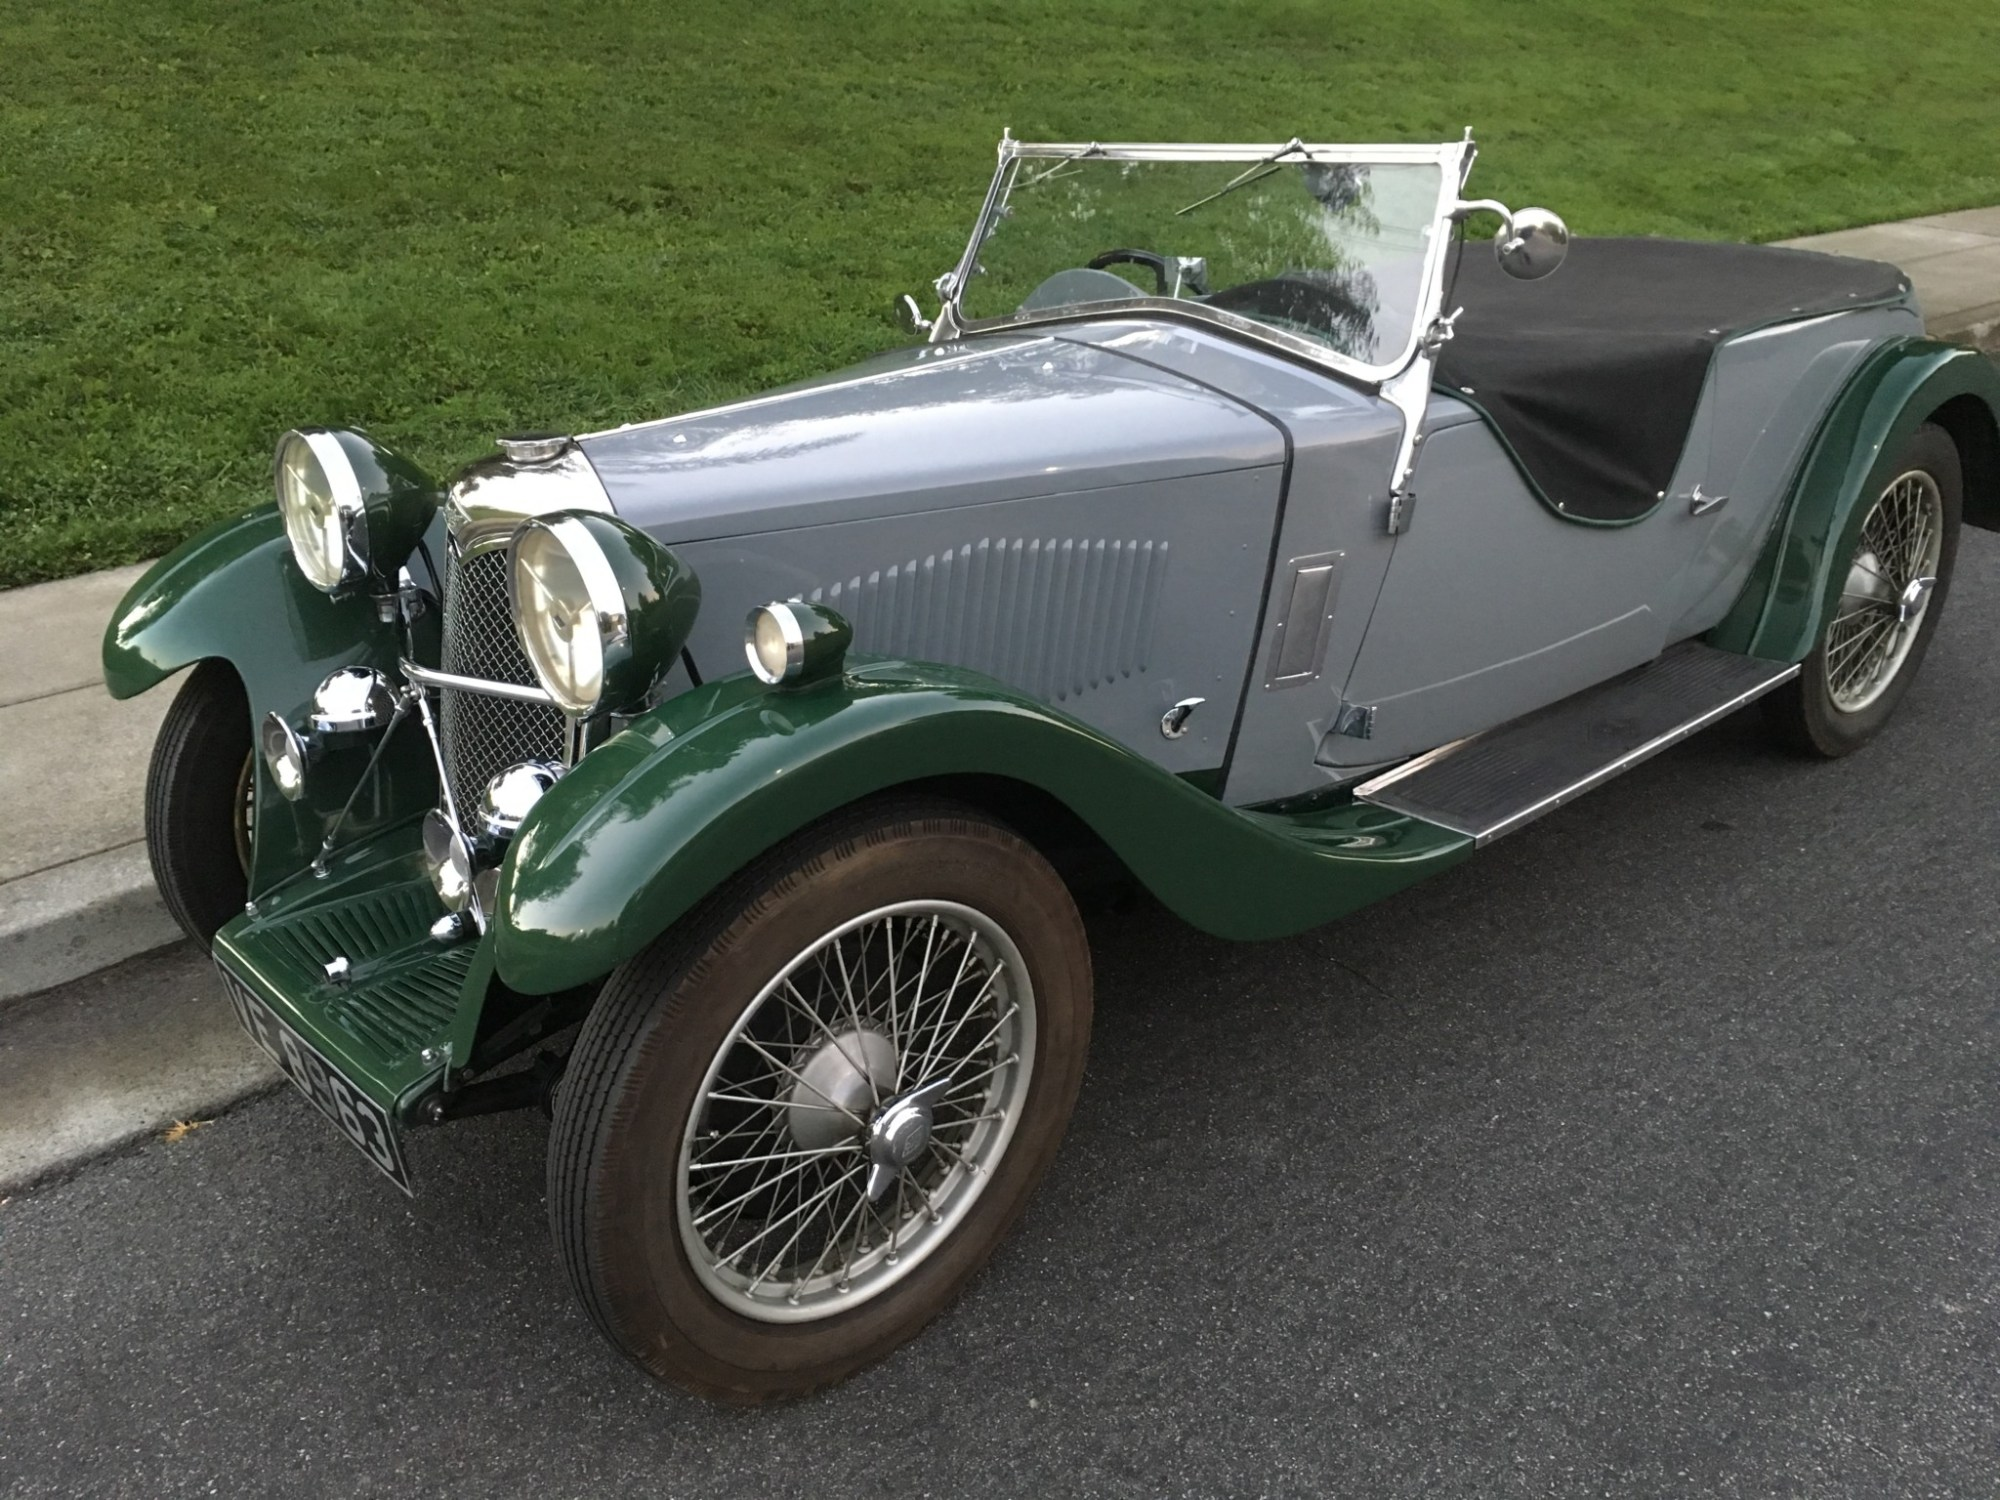 hight resolution of 1933 riley nine lynx for sale on bat auctions closed on september 27 2018 lot 12 719 bring a trailer